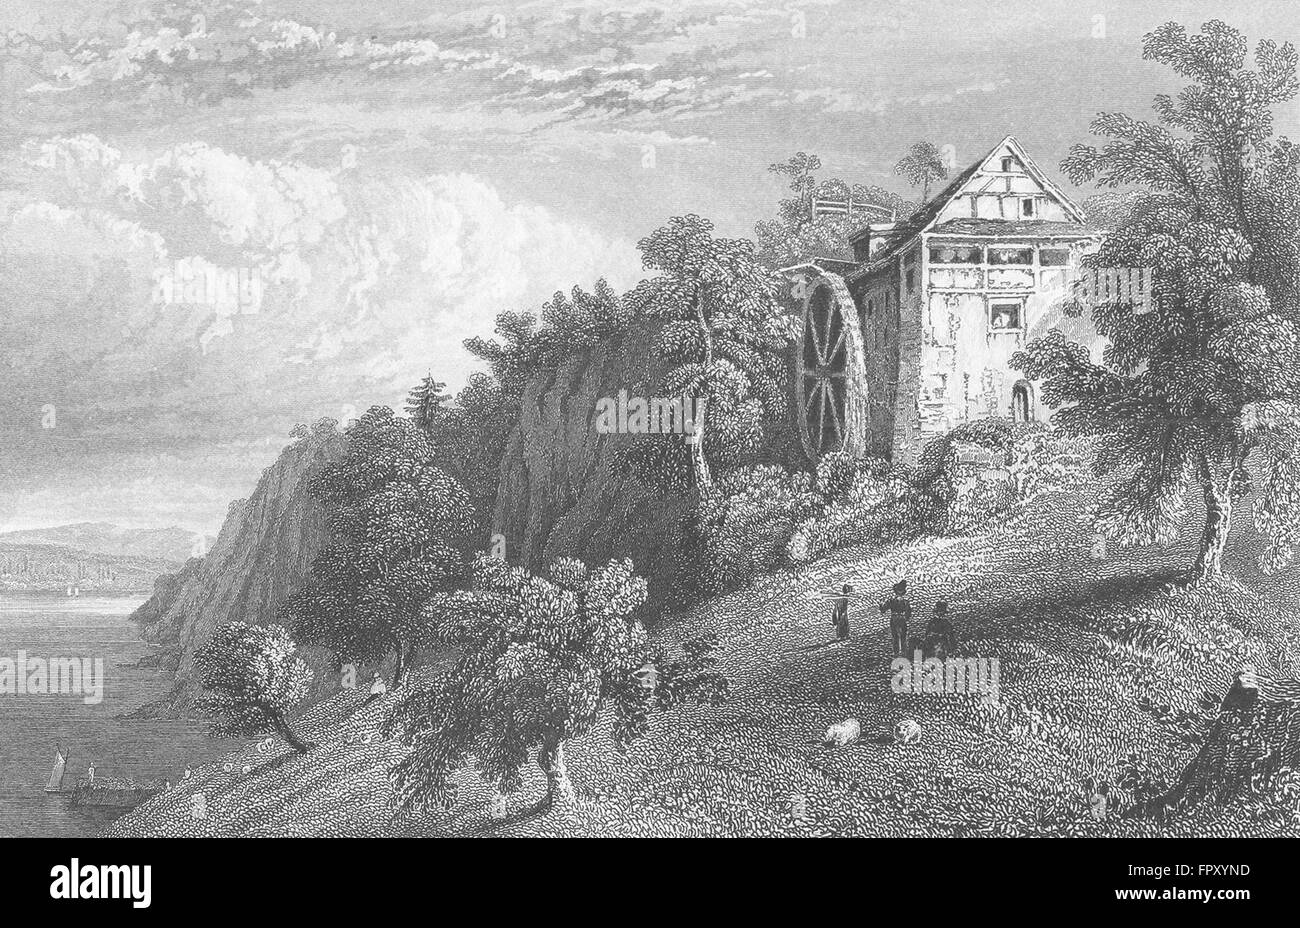 GERMANY: Mill of roos, Istein: Tombleson, antique print 1830 Stock Photo